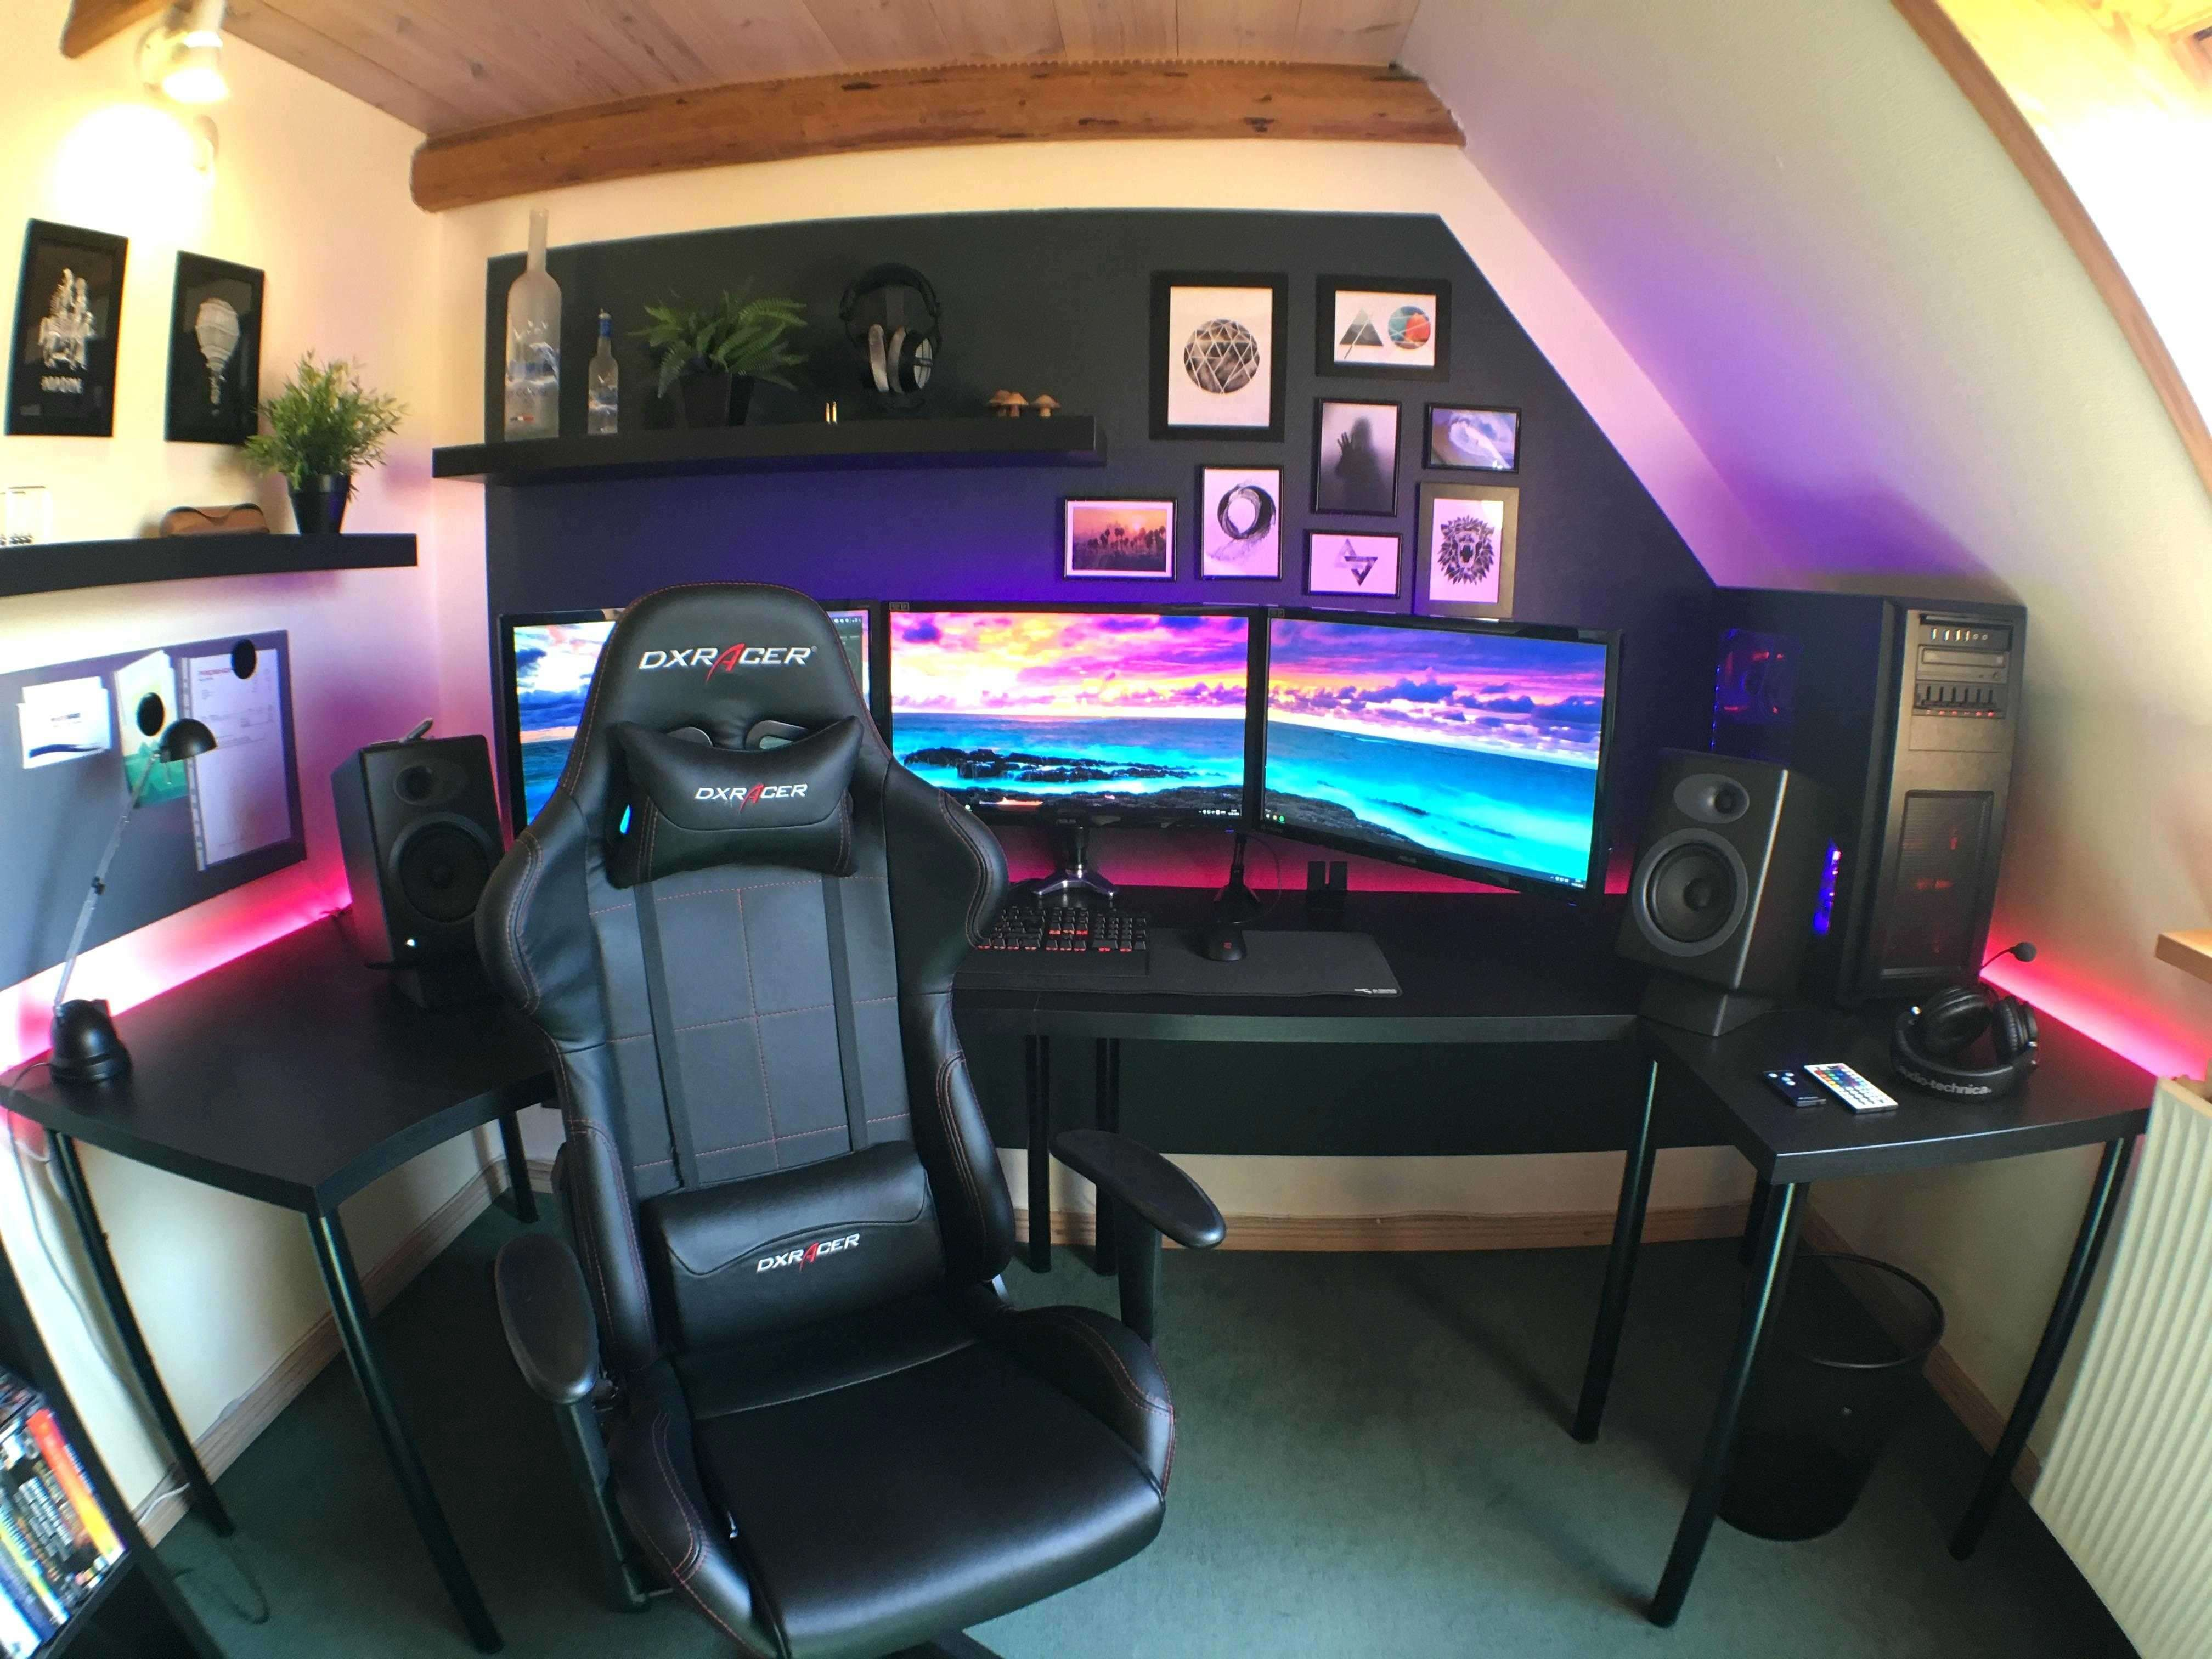 But now, i'm moving out and have even less stuff. Gaming Room Ideas Man Caves | camaxid.com | Small game ...